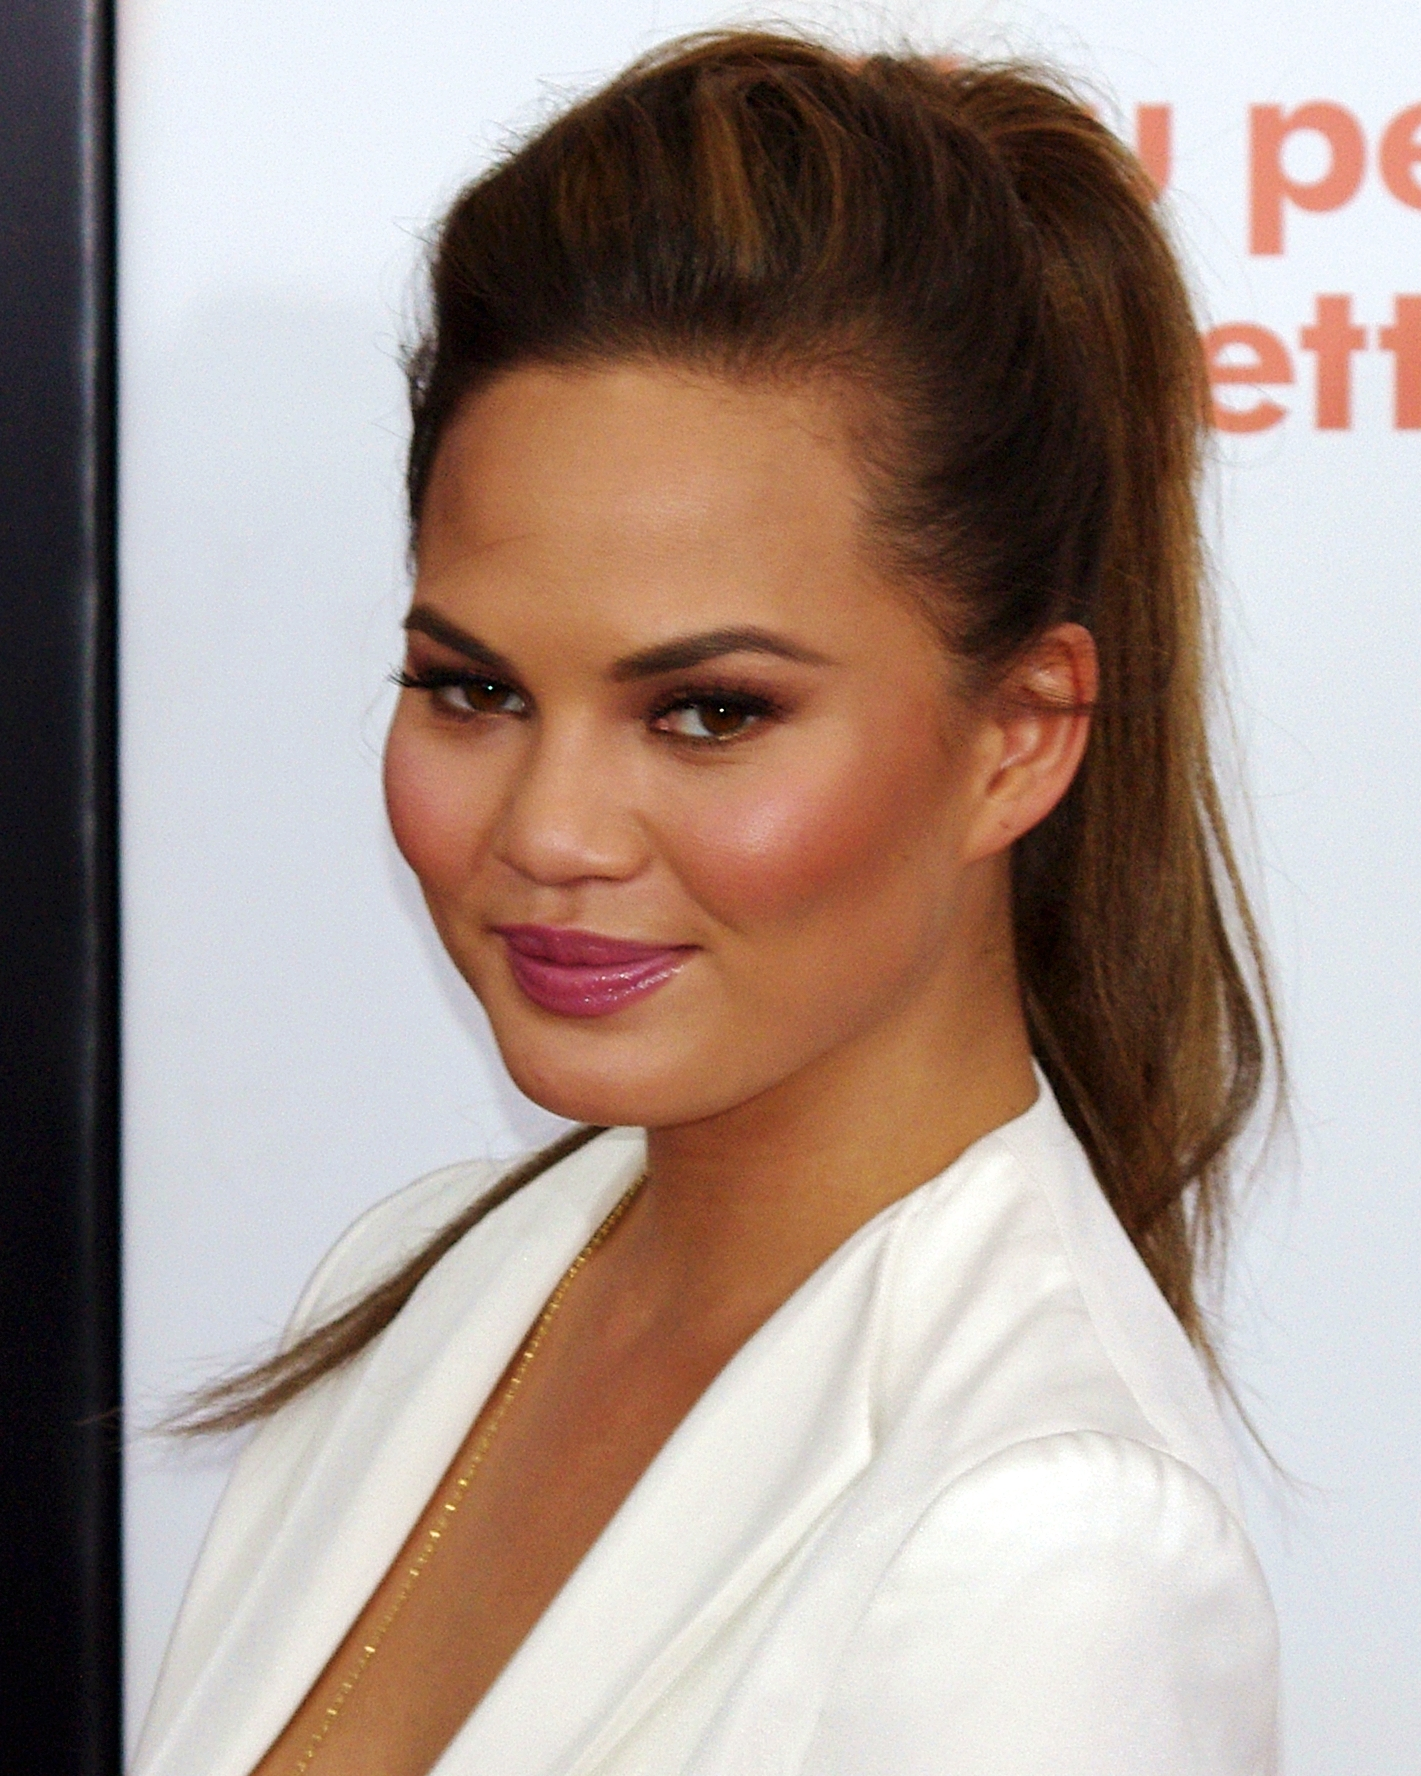 Communication on this topic: Gina Wilkinson, chrissy-teigen/